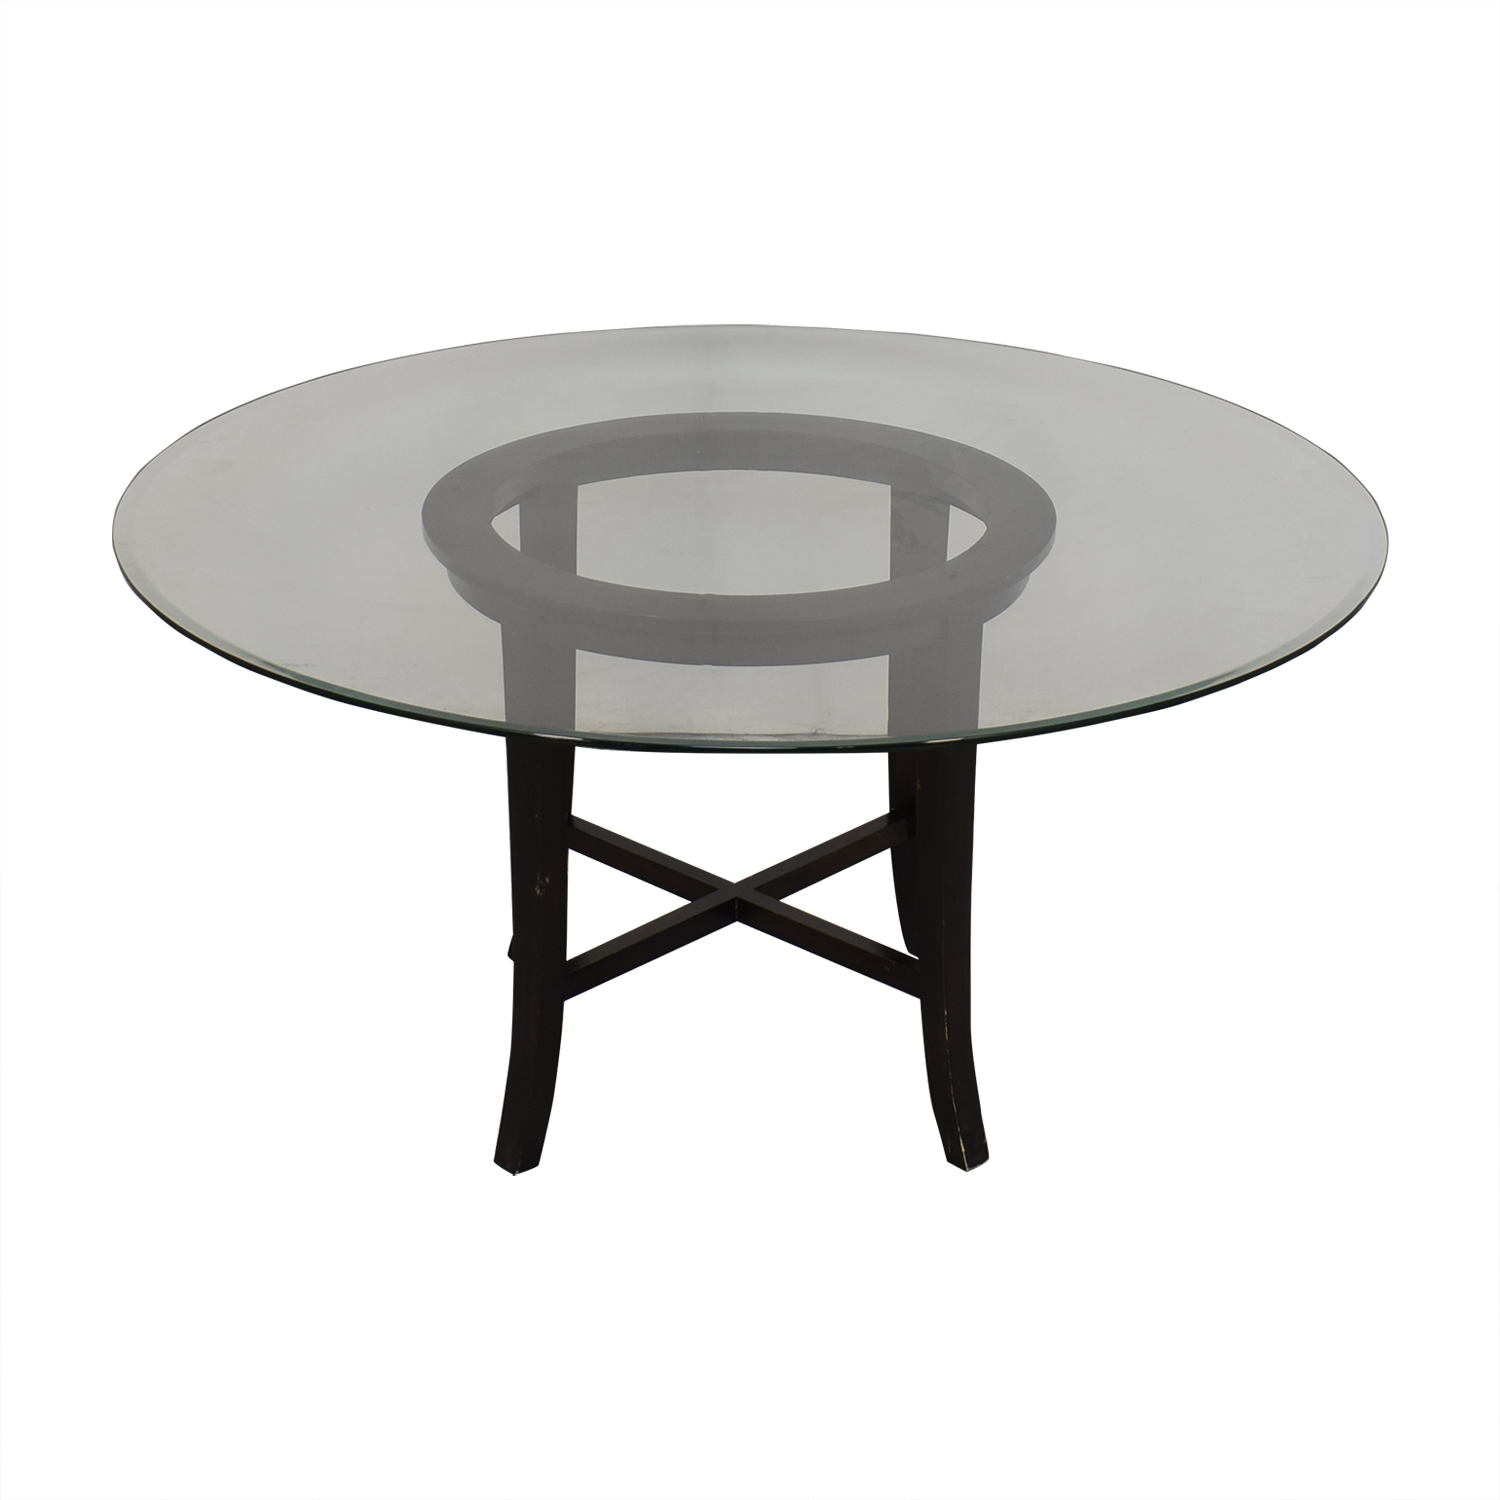 Crate & Barrel Crate & Barrel Halo Ebony Round Dining Table with Glass Top nyc